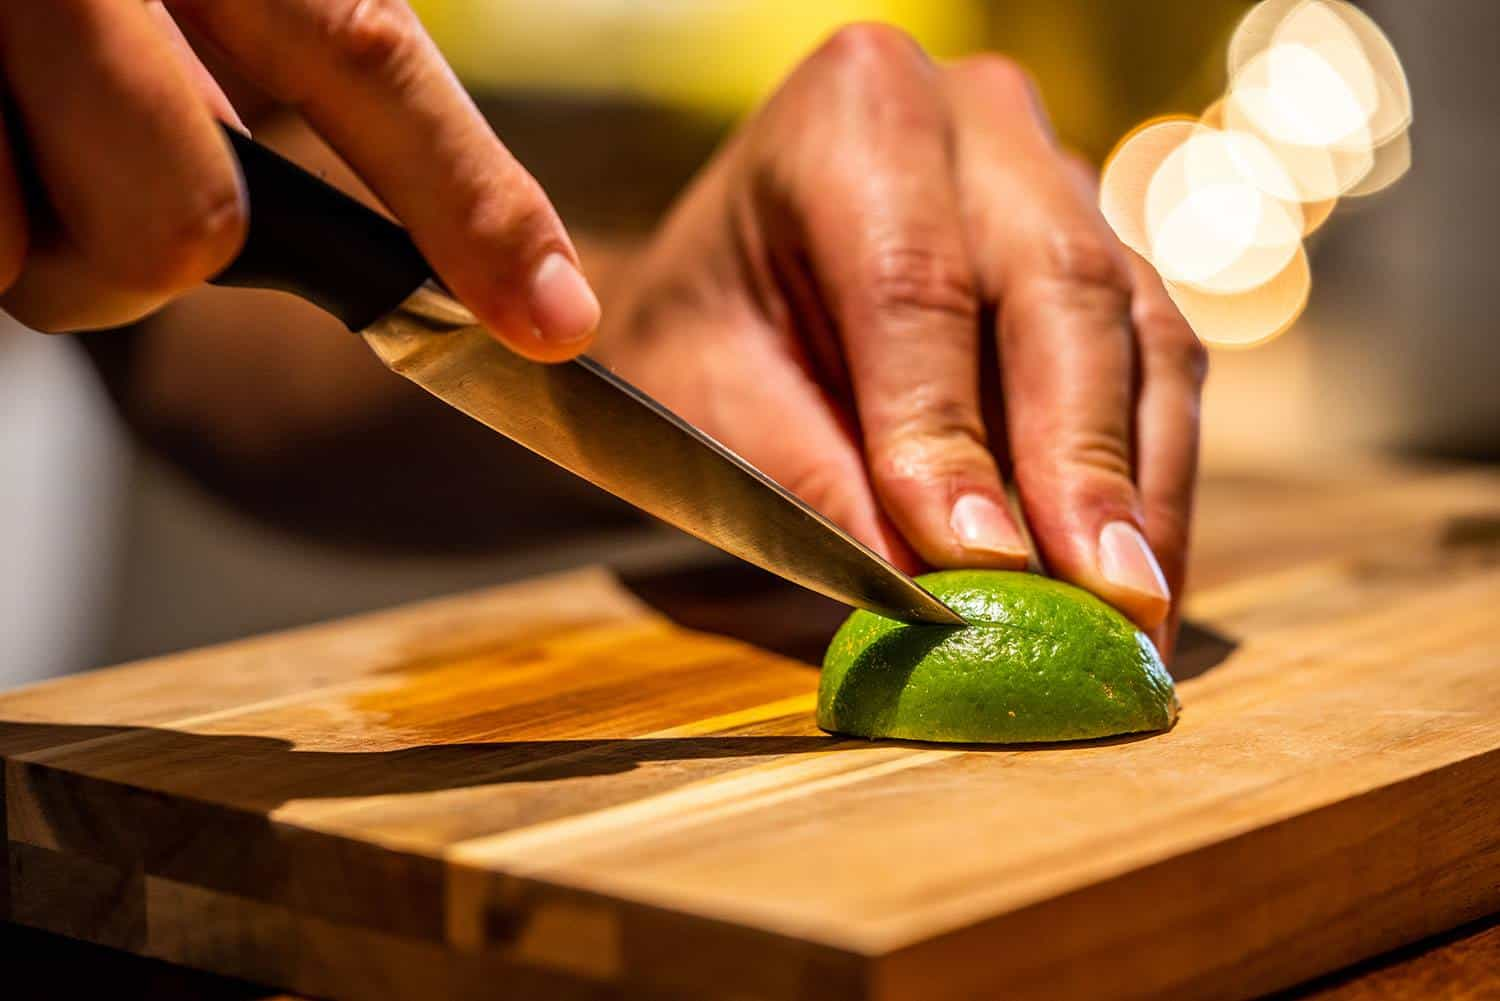 Slicing lime on cutting board